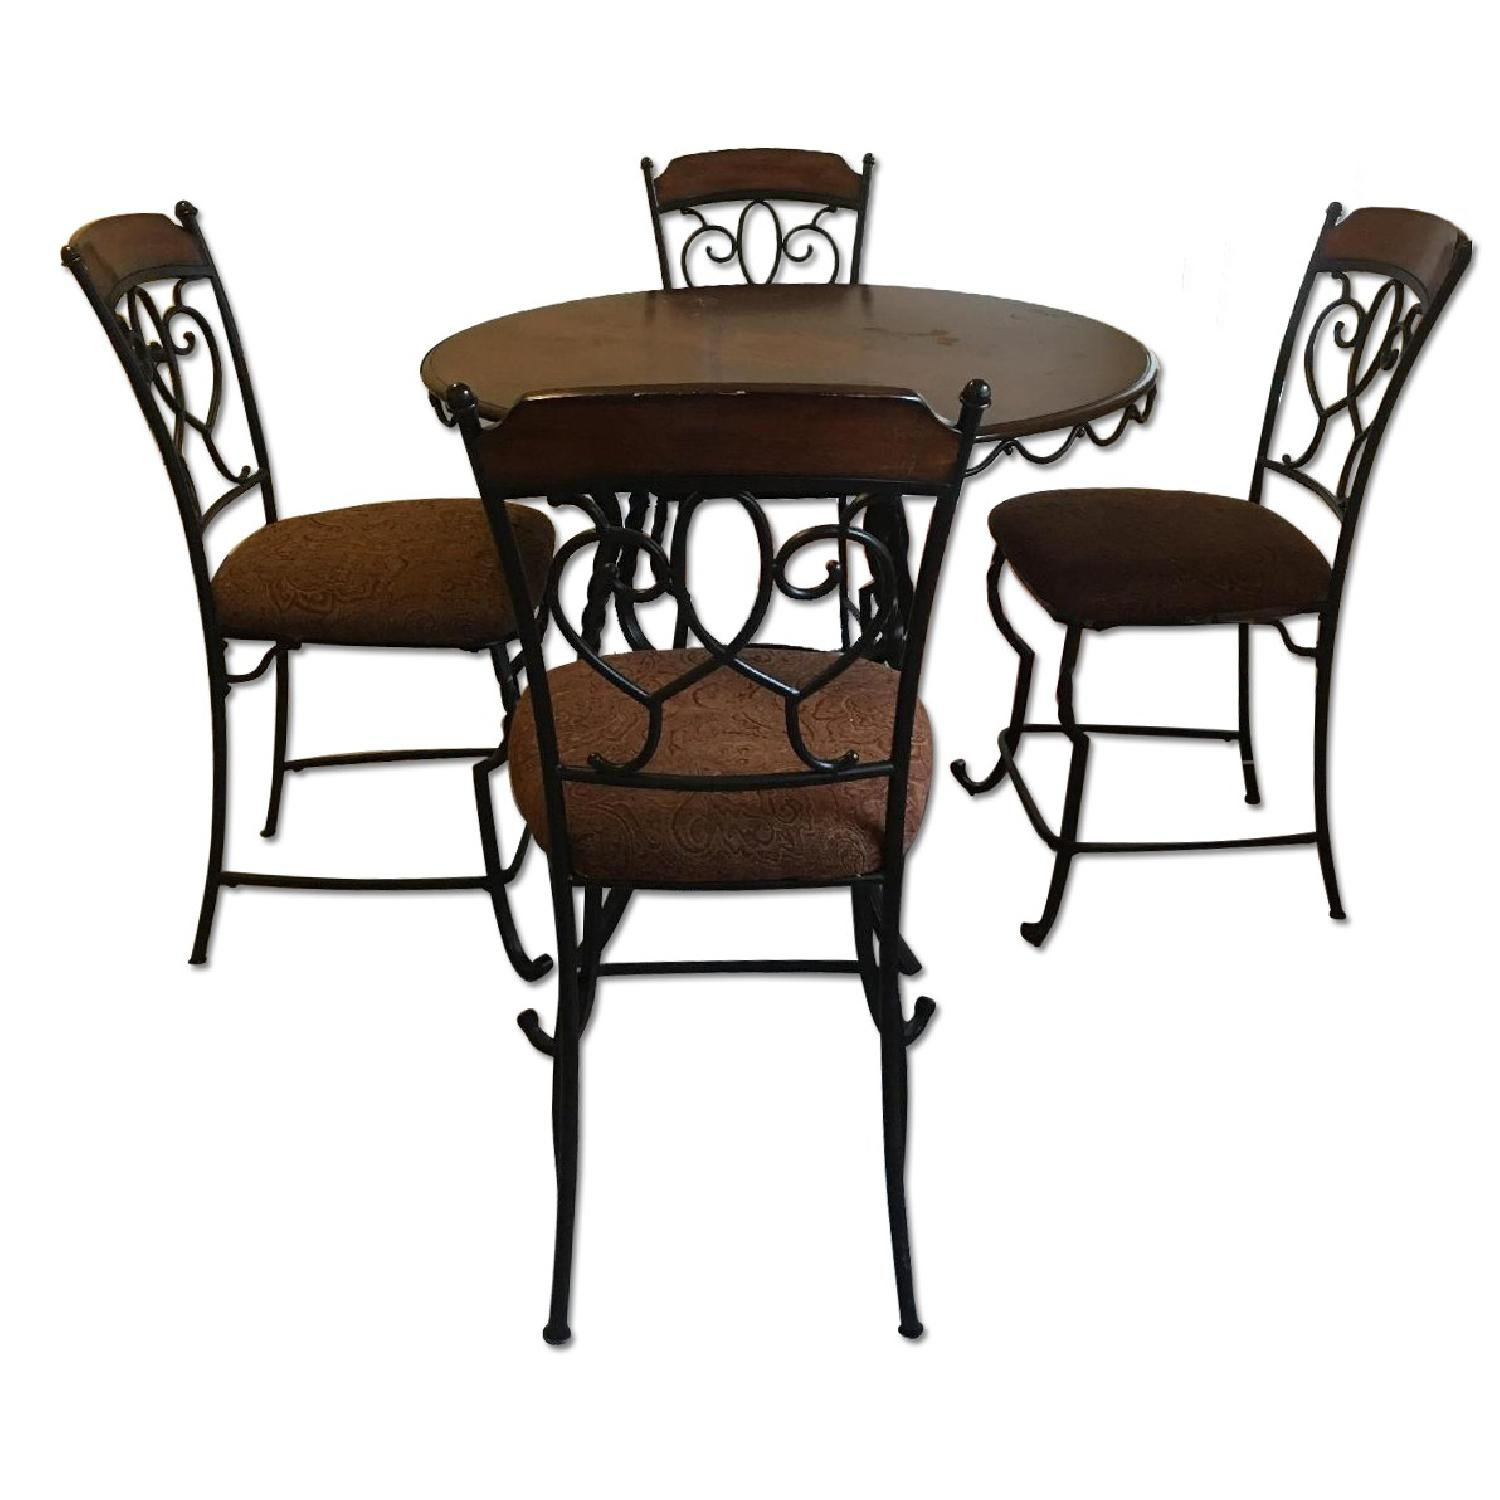 Round Black Metal Dining Table w/ 4 Chairs